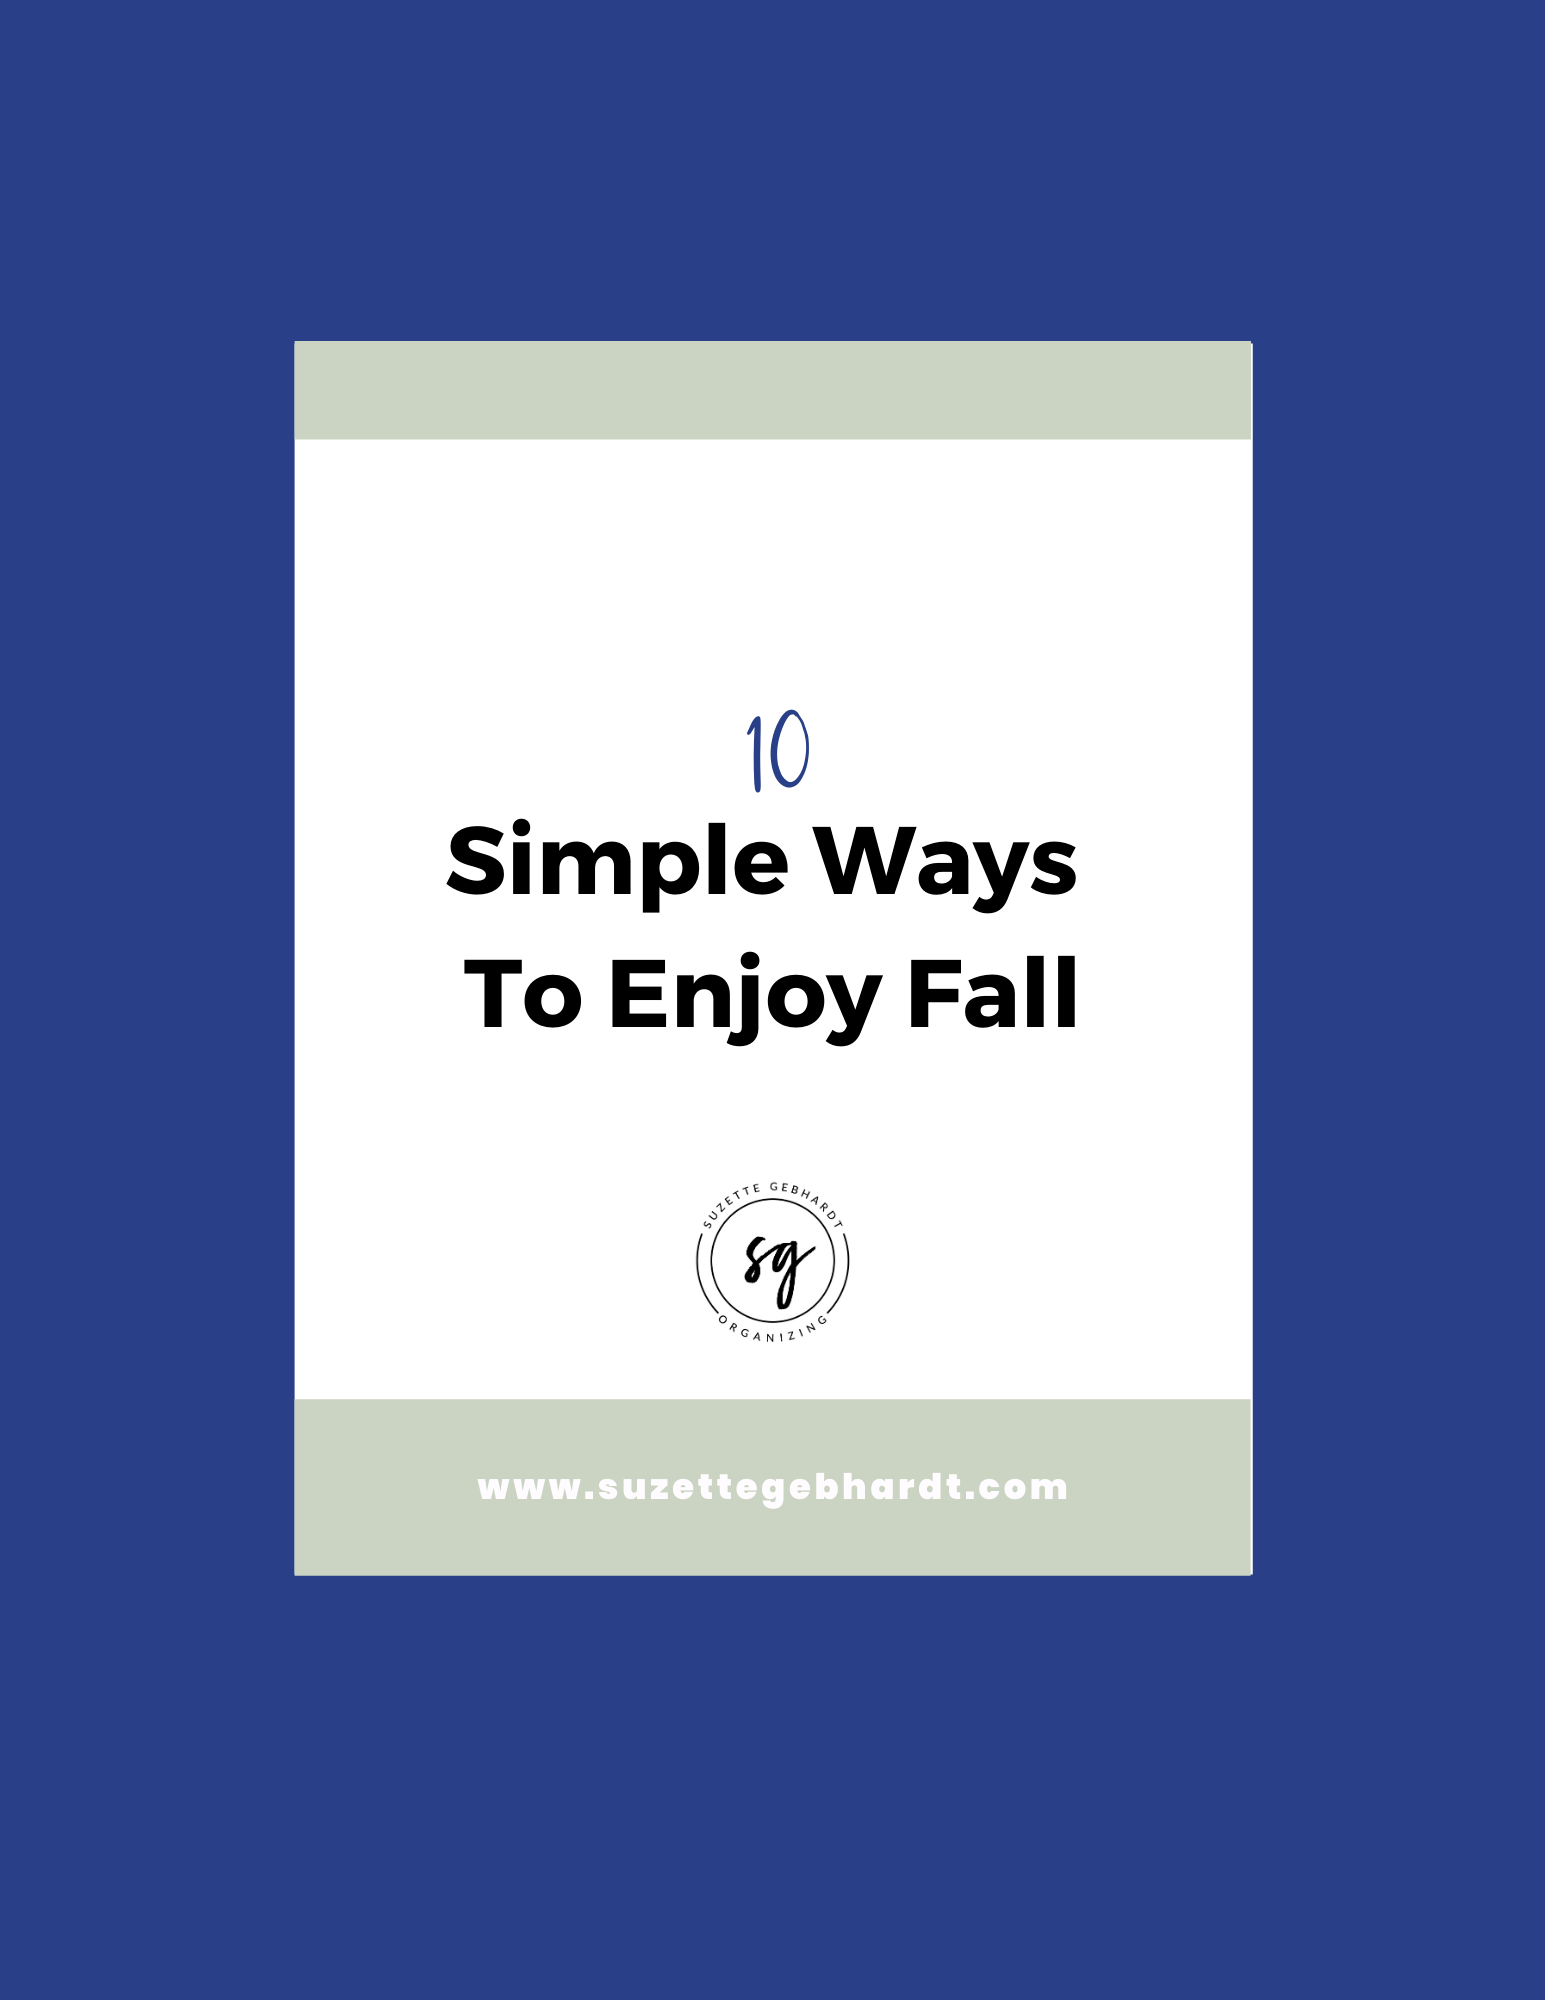 10 Simple Ways to Enjoy Fall